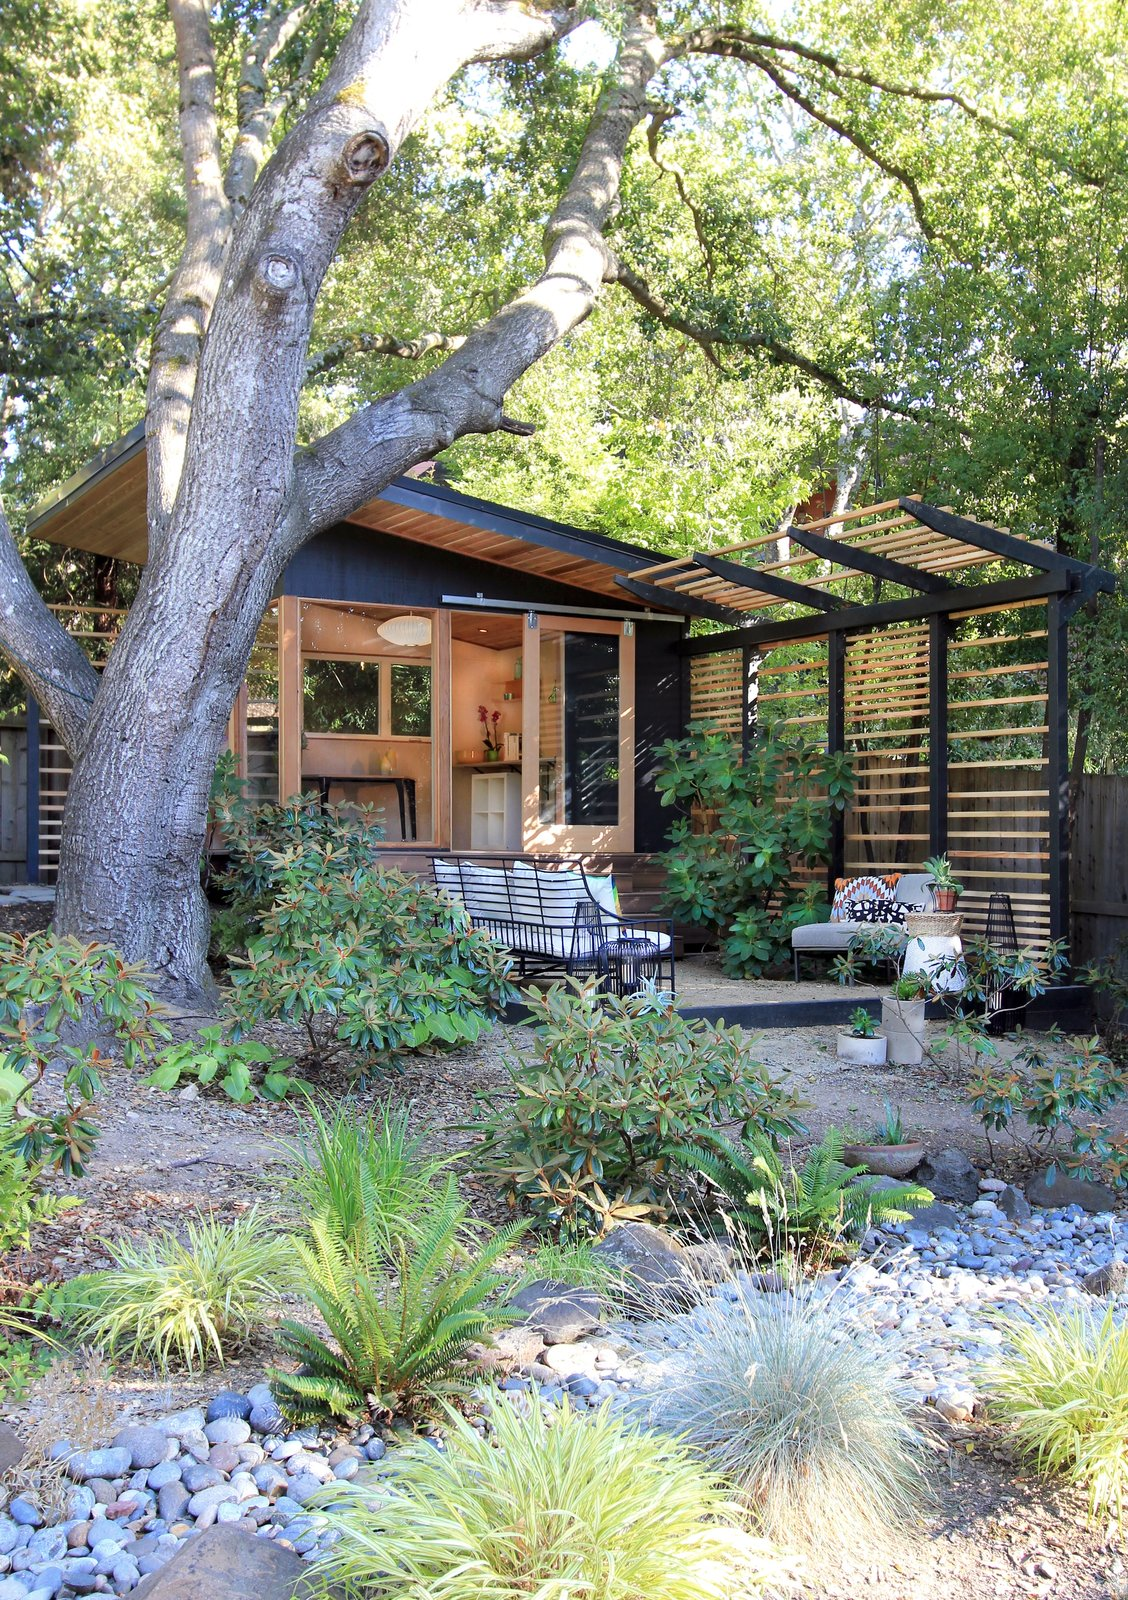 Outdoor, Back Yard, Garden, Woodland, Trees, Flowers, Shrubs, Boulders, Small Patio, Porch, Deck, Walkways, Decomposed Granite Patio, Porch, Deck, Pavers Patio, Porch, Deck, Gardens, Landscape Lighting, Decking Patio, Porch, Deck, Horizontal Fences, Wall, and Hanging Lighting The Shudio and patio with dry river bed in foreground  The Shudio by Melissa Hanley